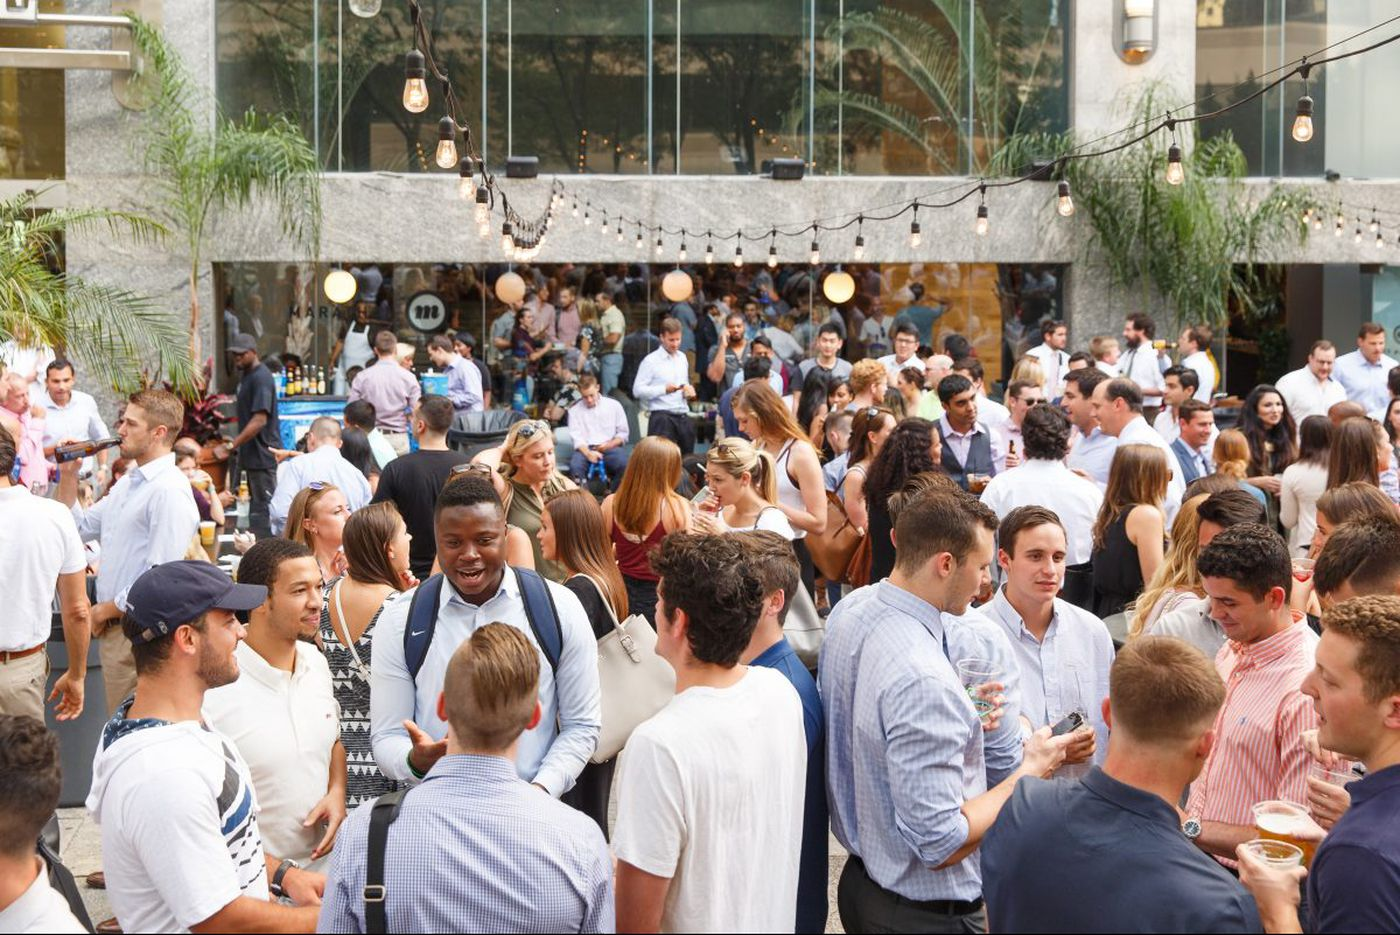 After brawl, Comcast Center drops out of Center City Sips events